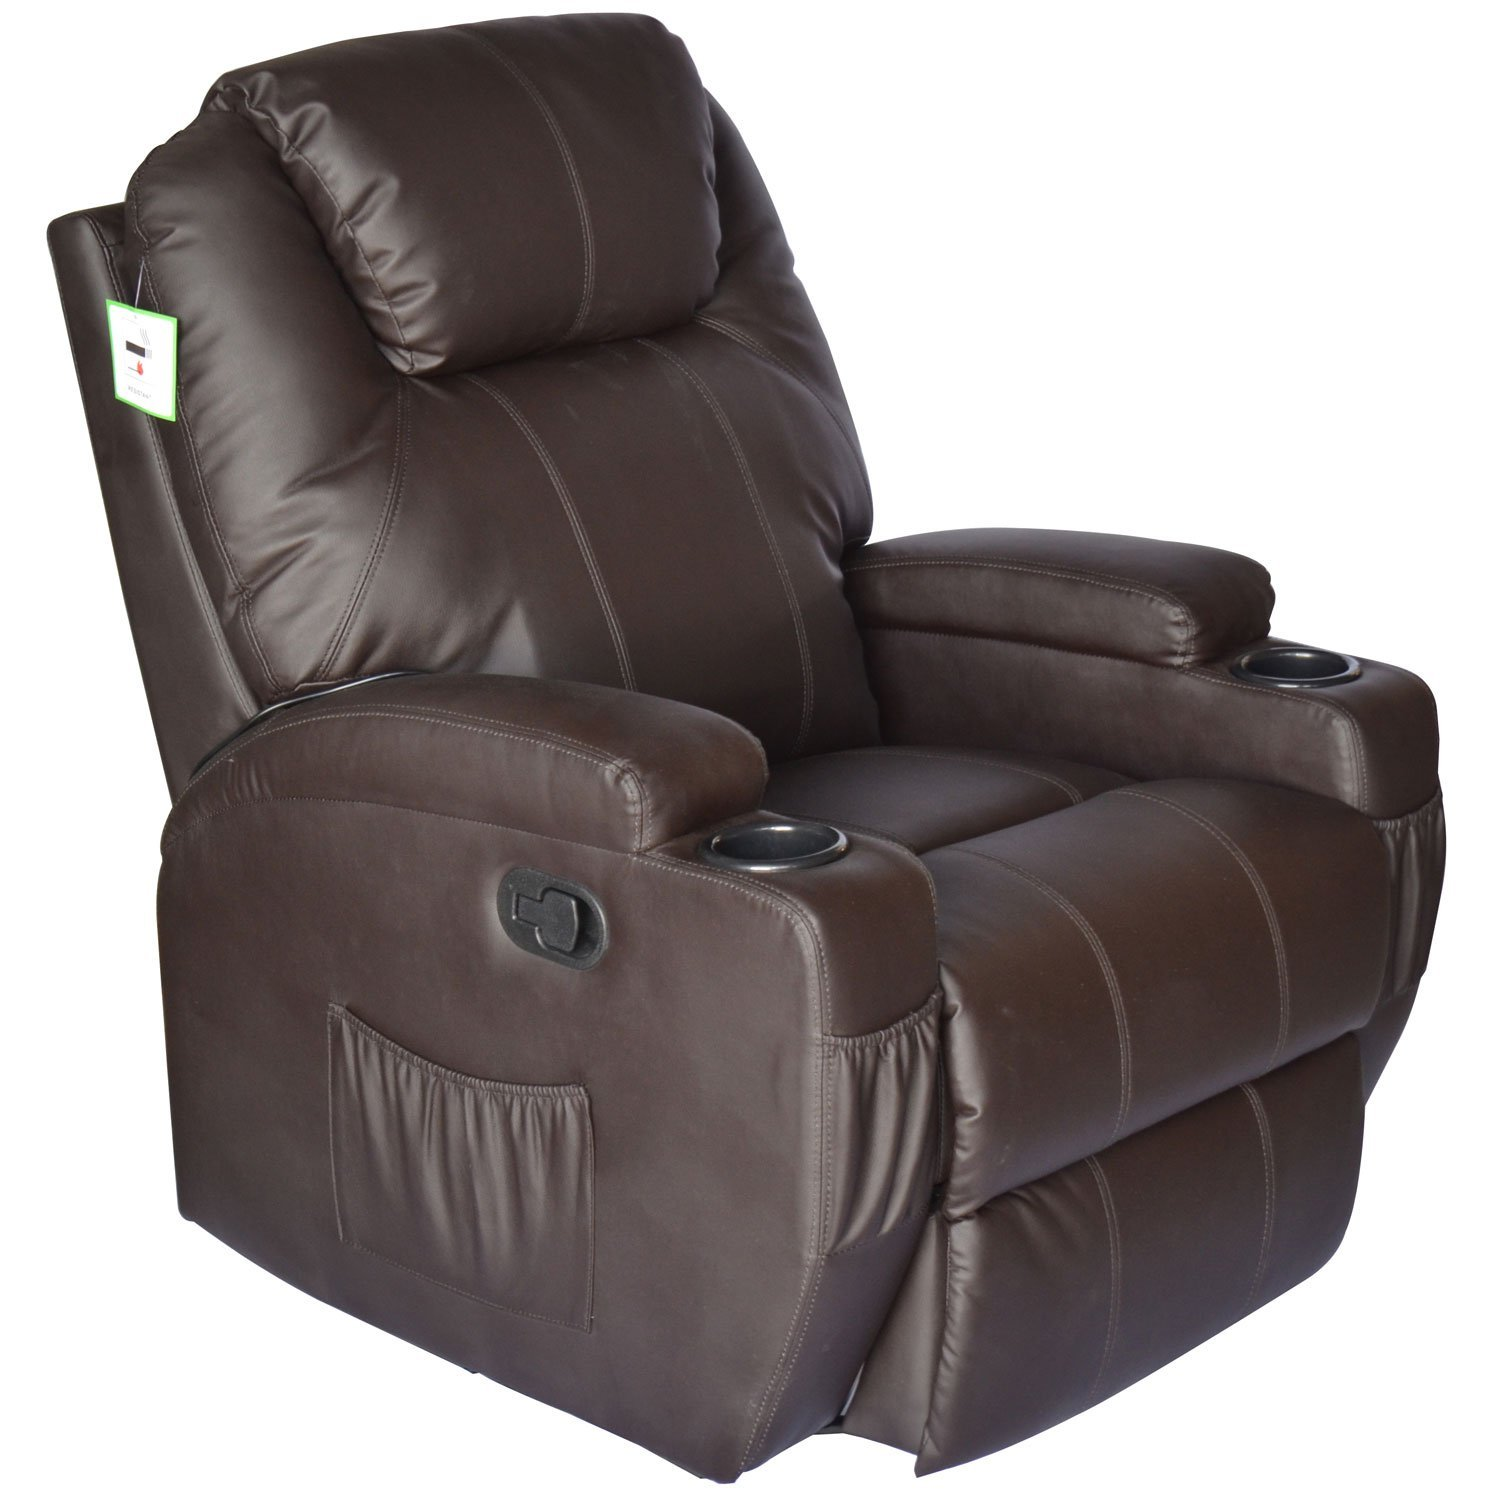 Hom Deluxe Heated Vibrating Massage Recliner Chair Review